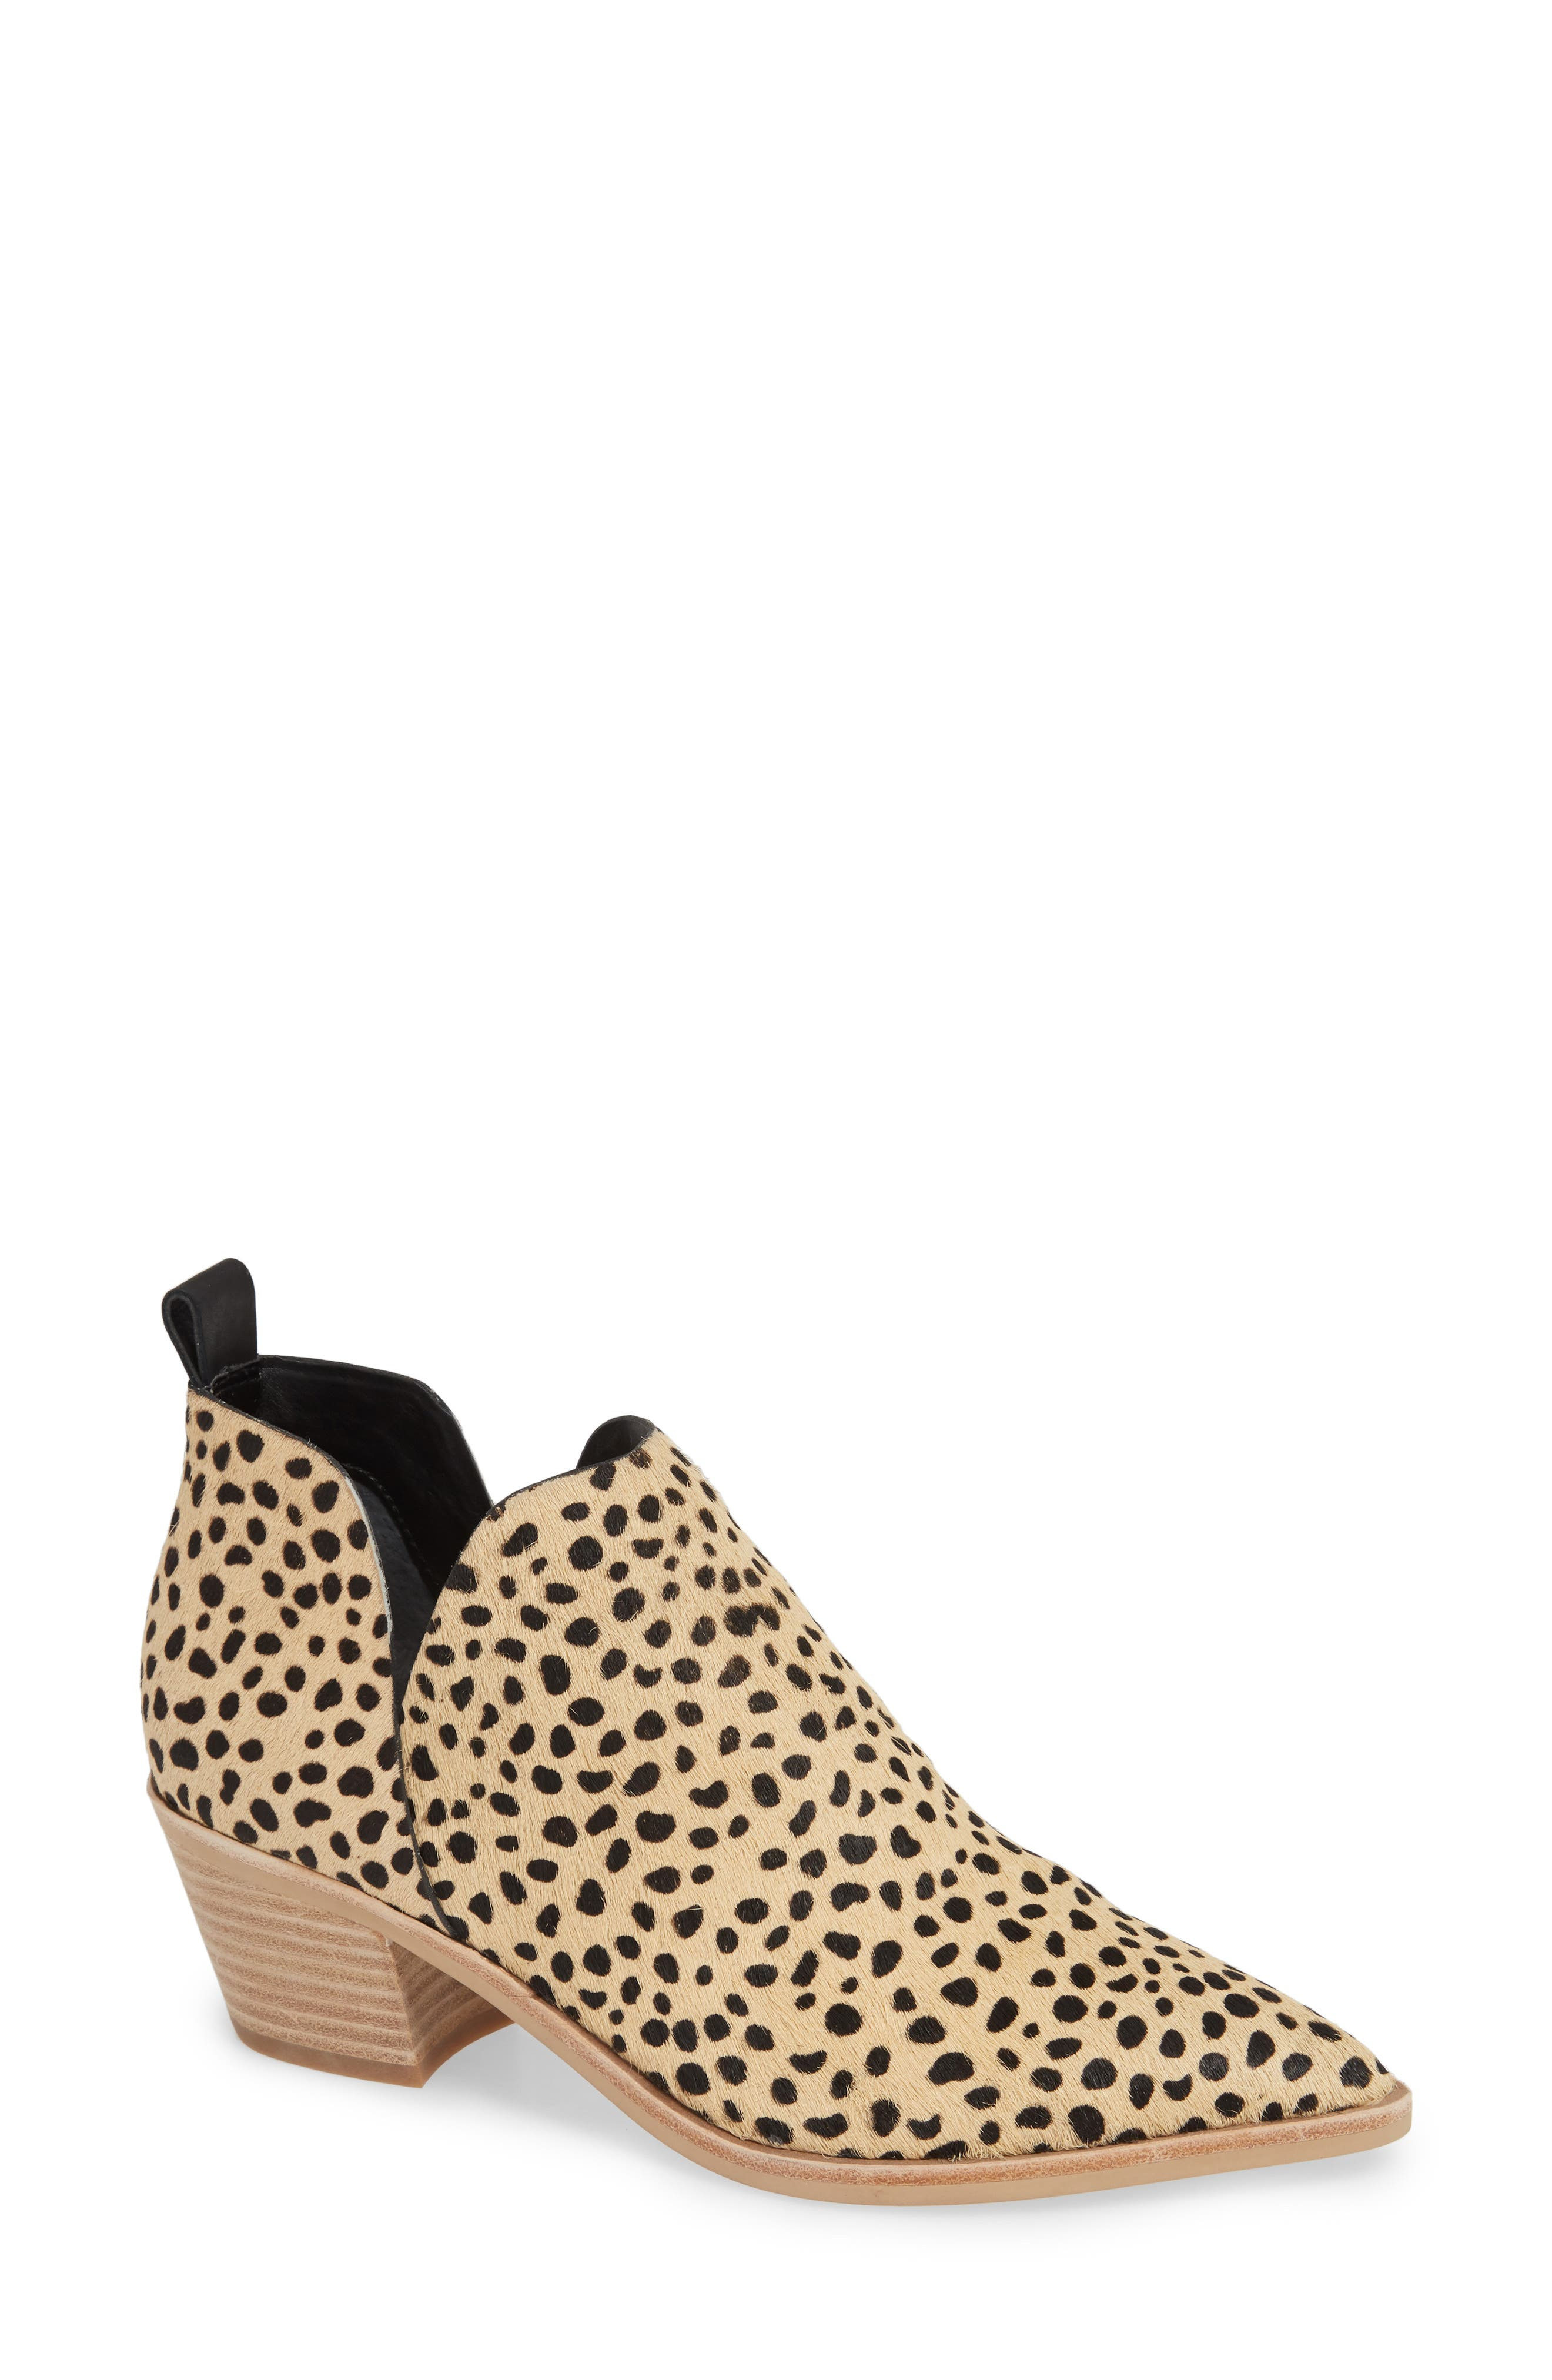 Dolce Vita Sonni Pointy Toe Bootie, Brown